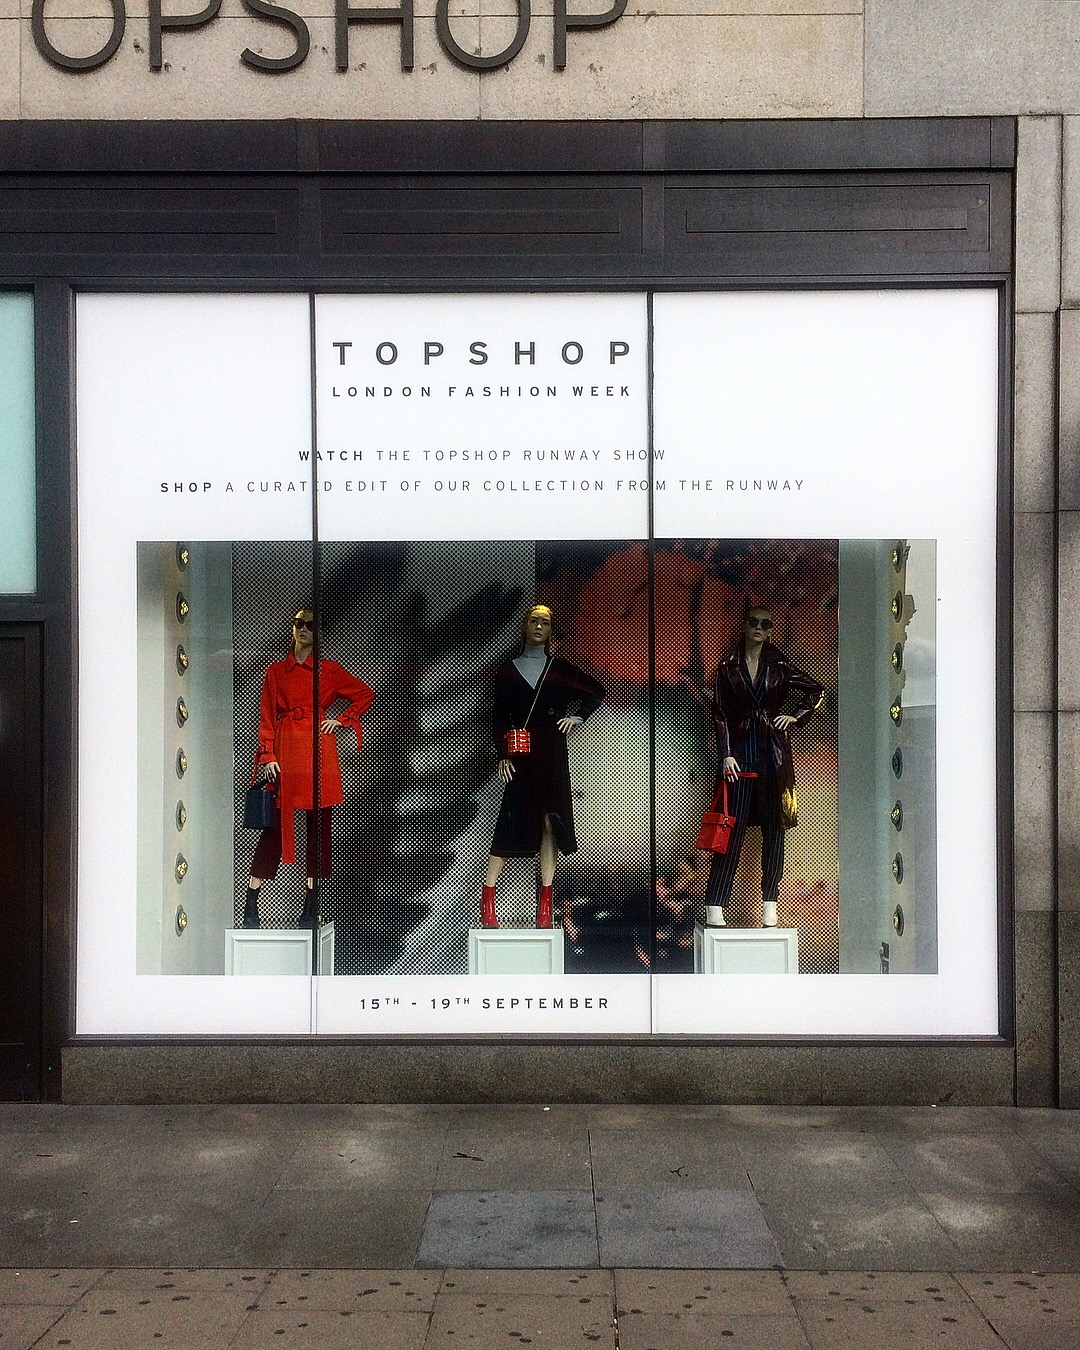 Topshop LFW windows